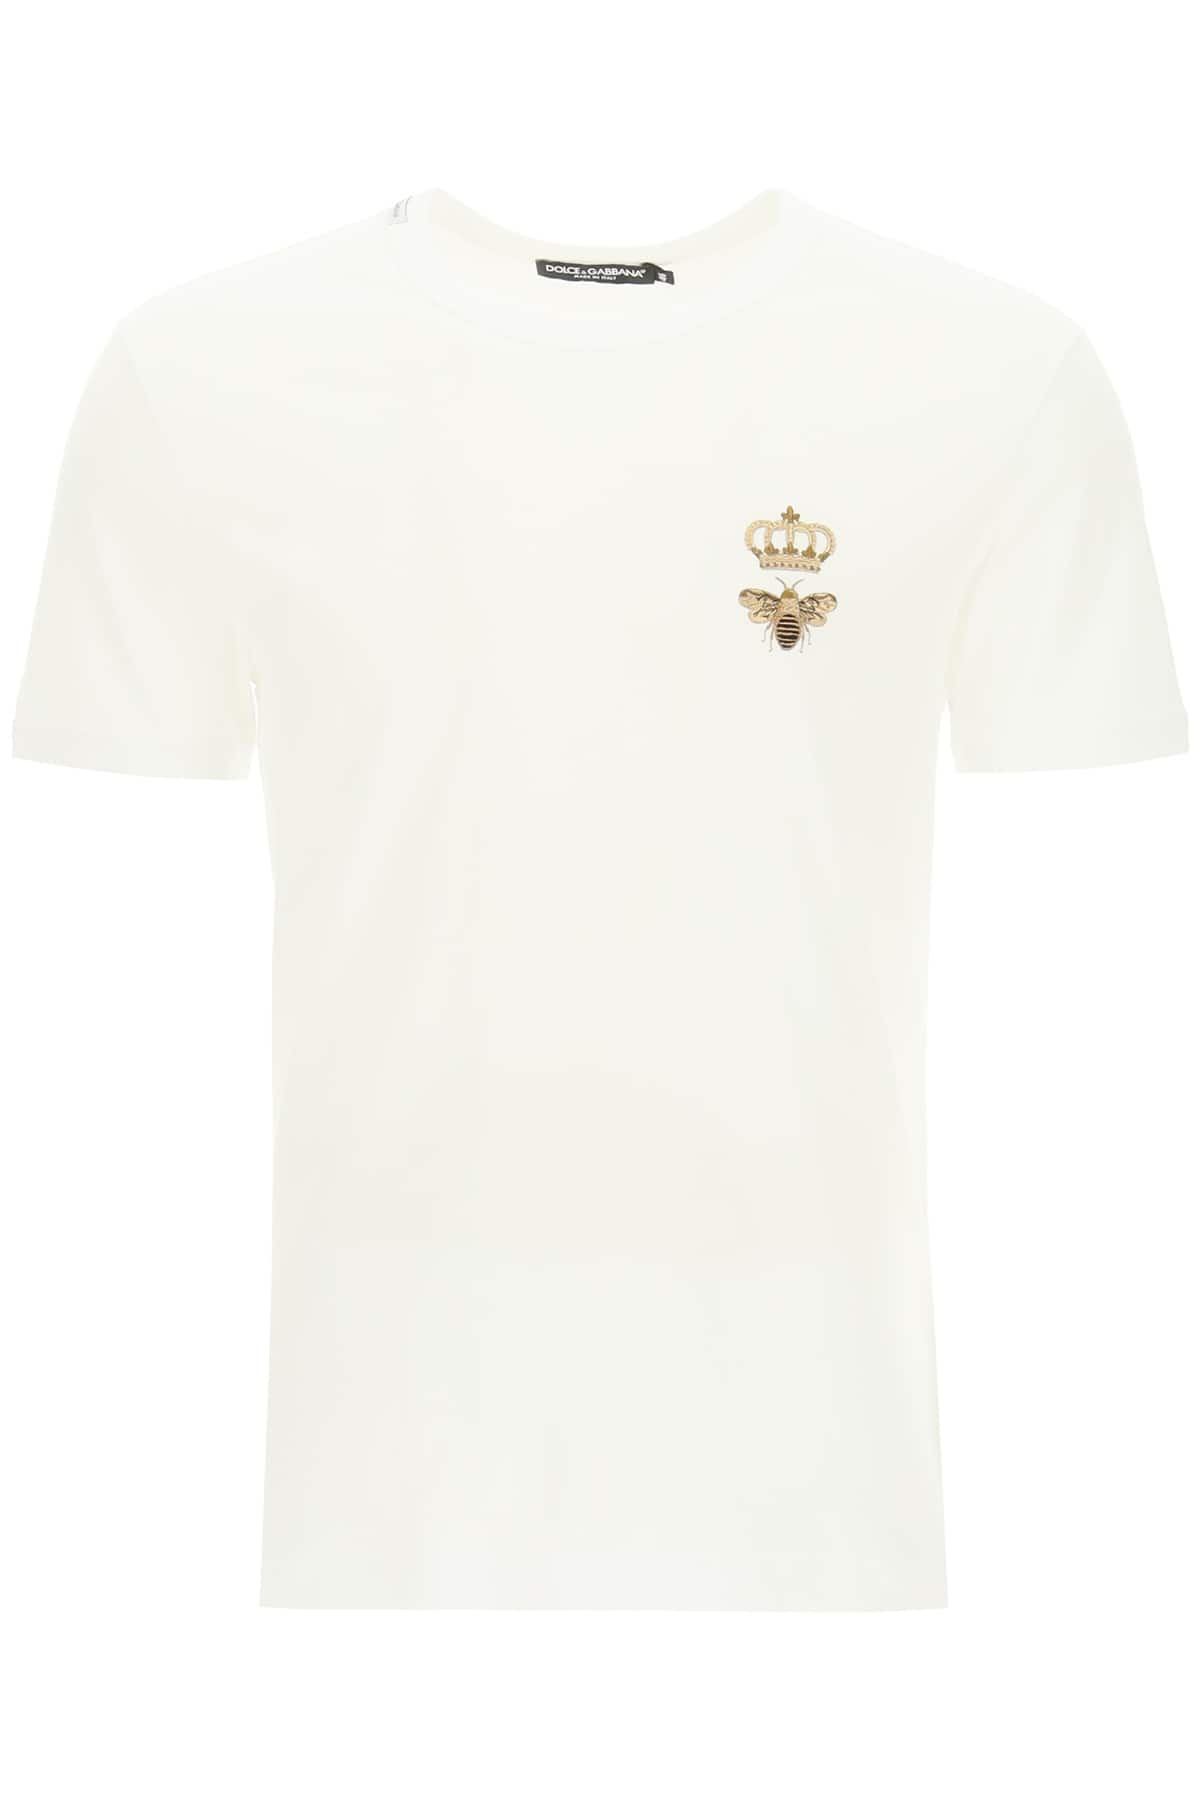 DOLCE & GABBANA T-SHIRT WITH BEE AND CROWN EMBROIDERY 46 White, Gold Cotton